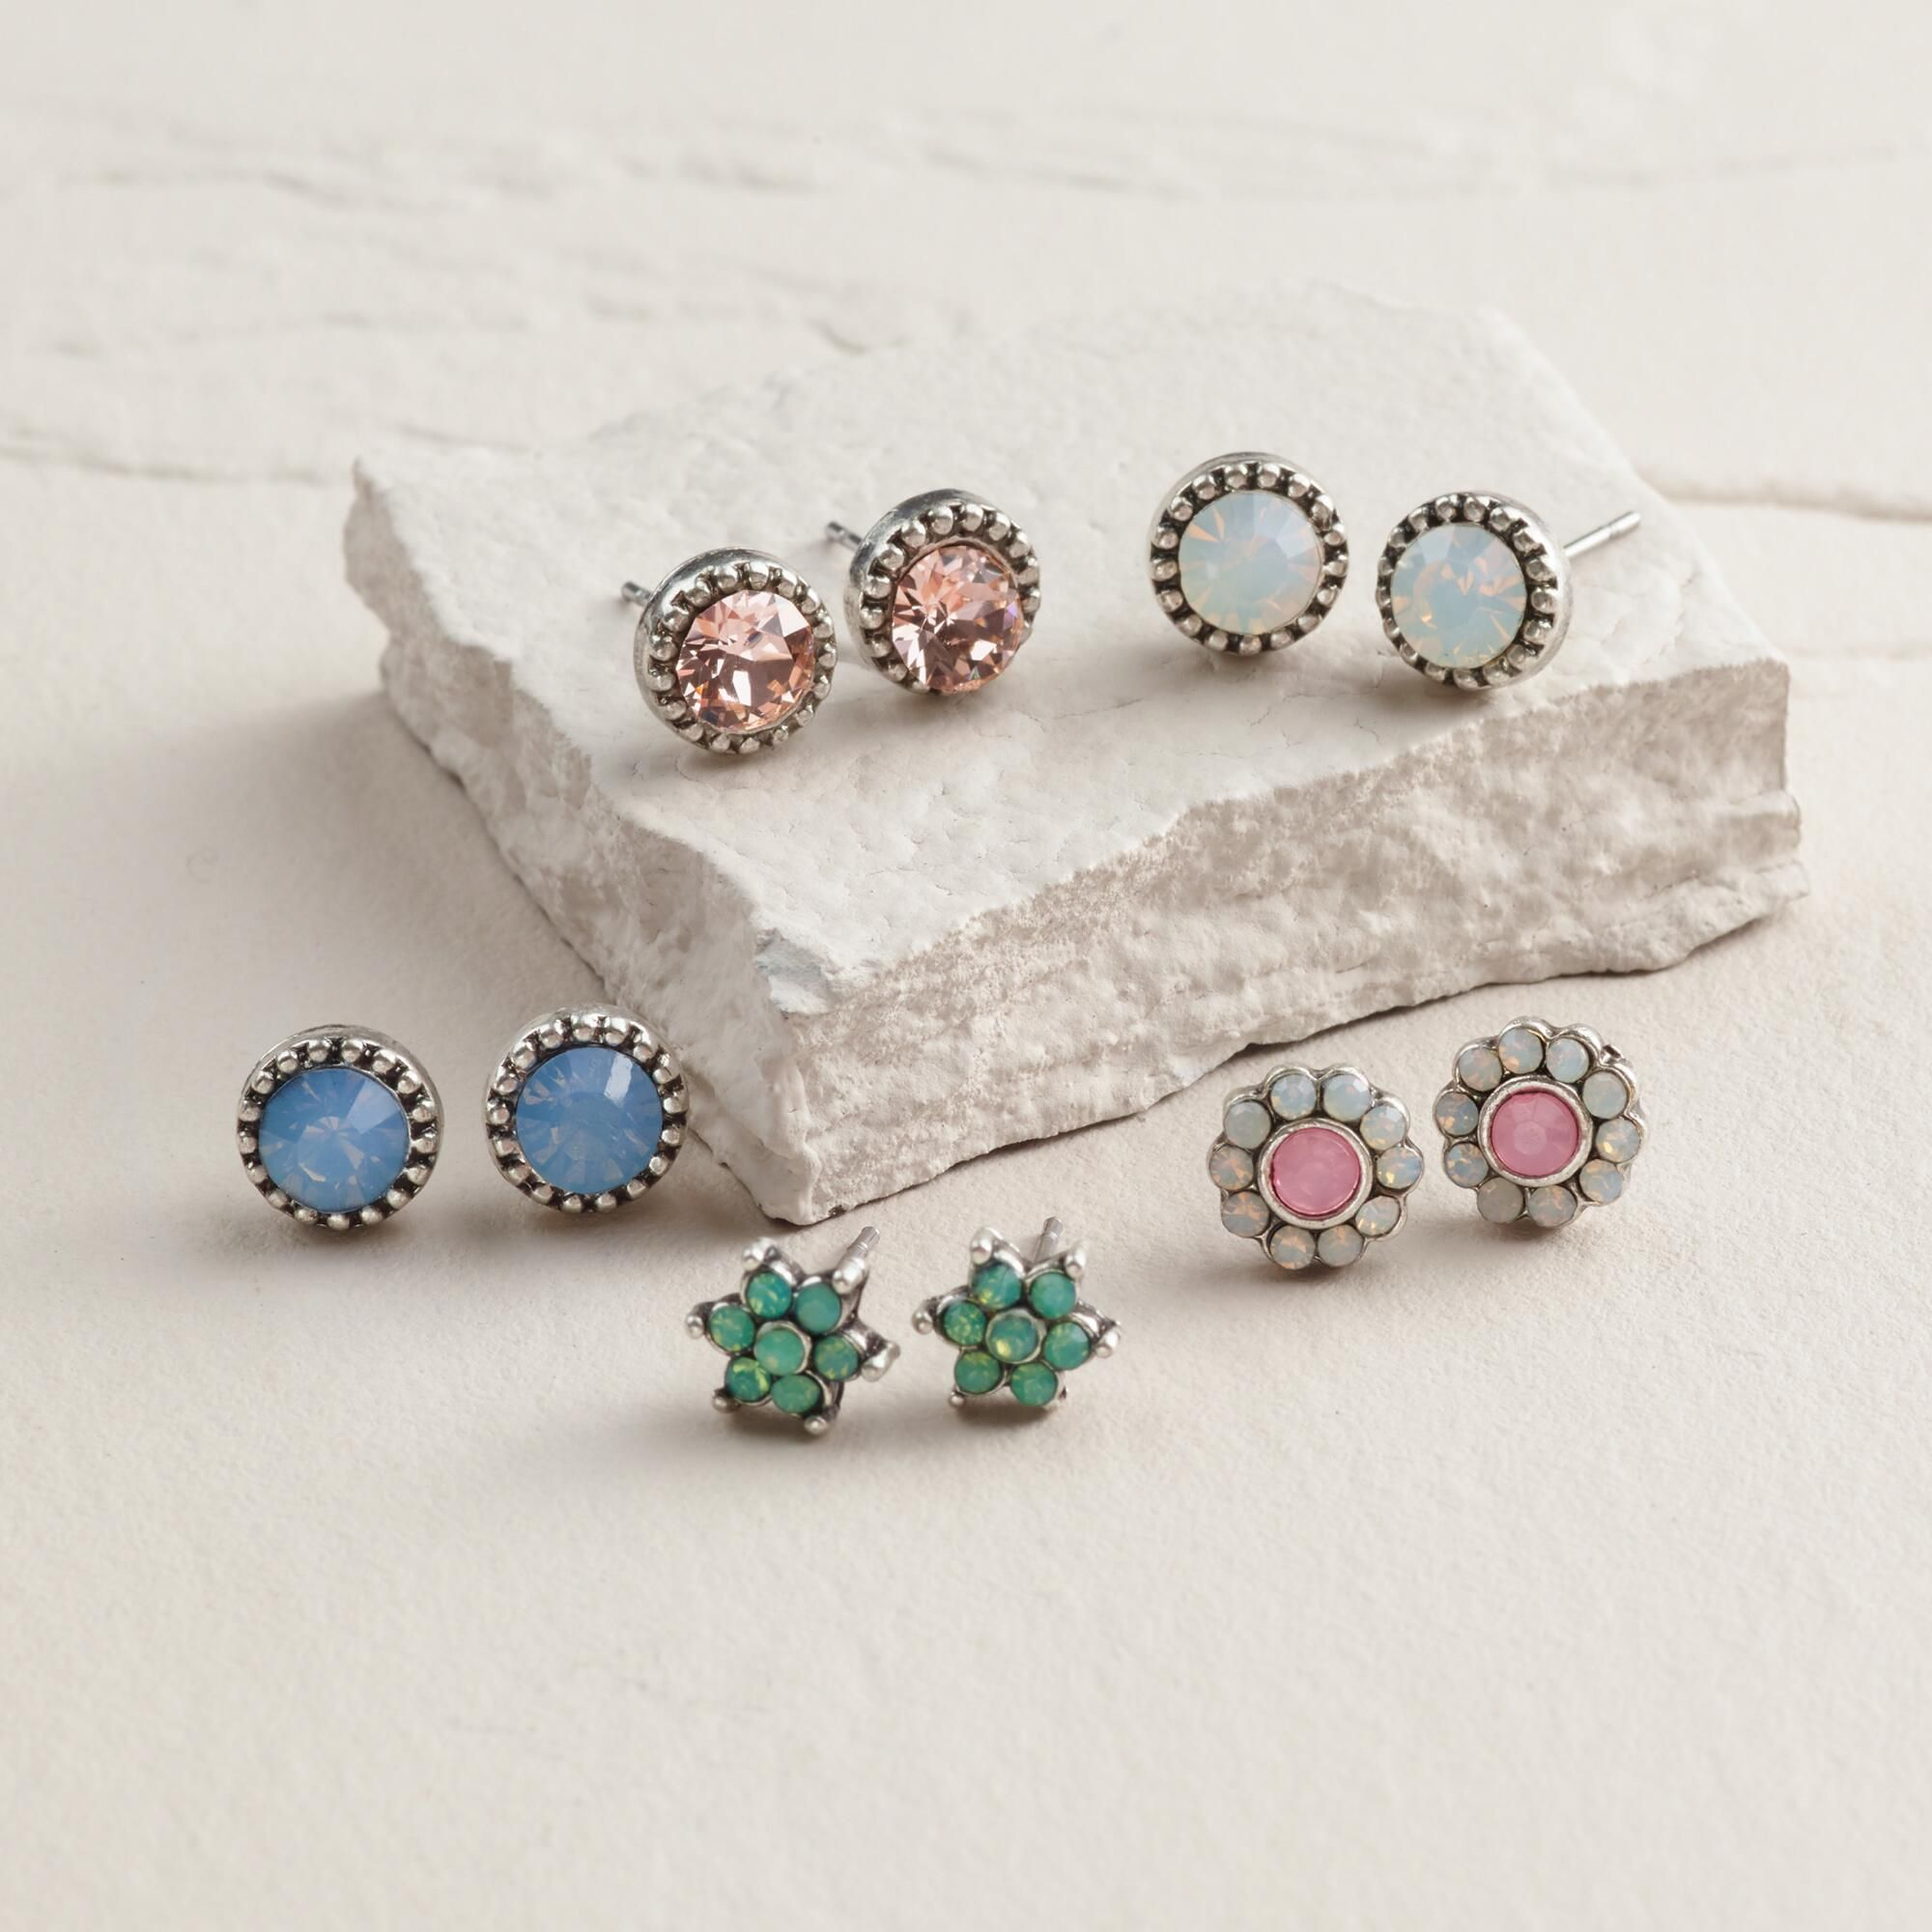 Featuring an array of opalescent designs with sparkling detail, our assorted earrings possess an ethereal spirit making them fun to mix and match.